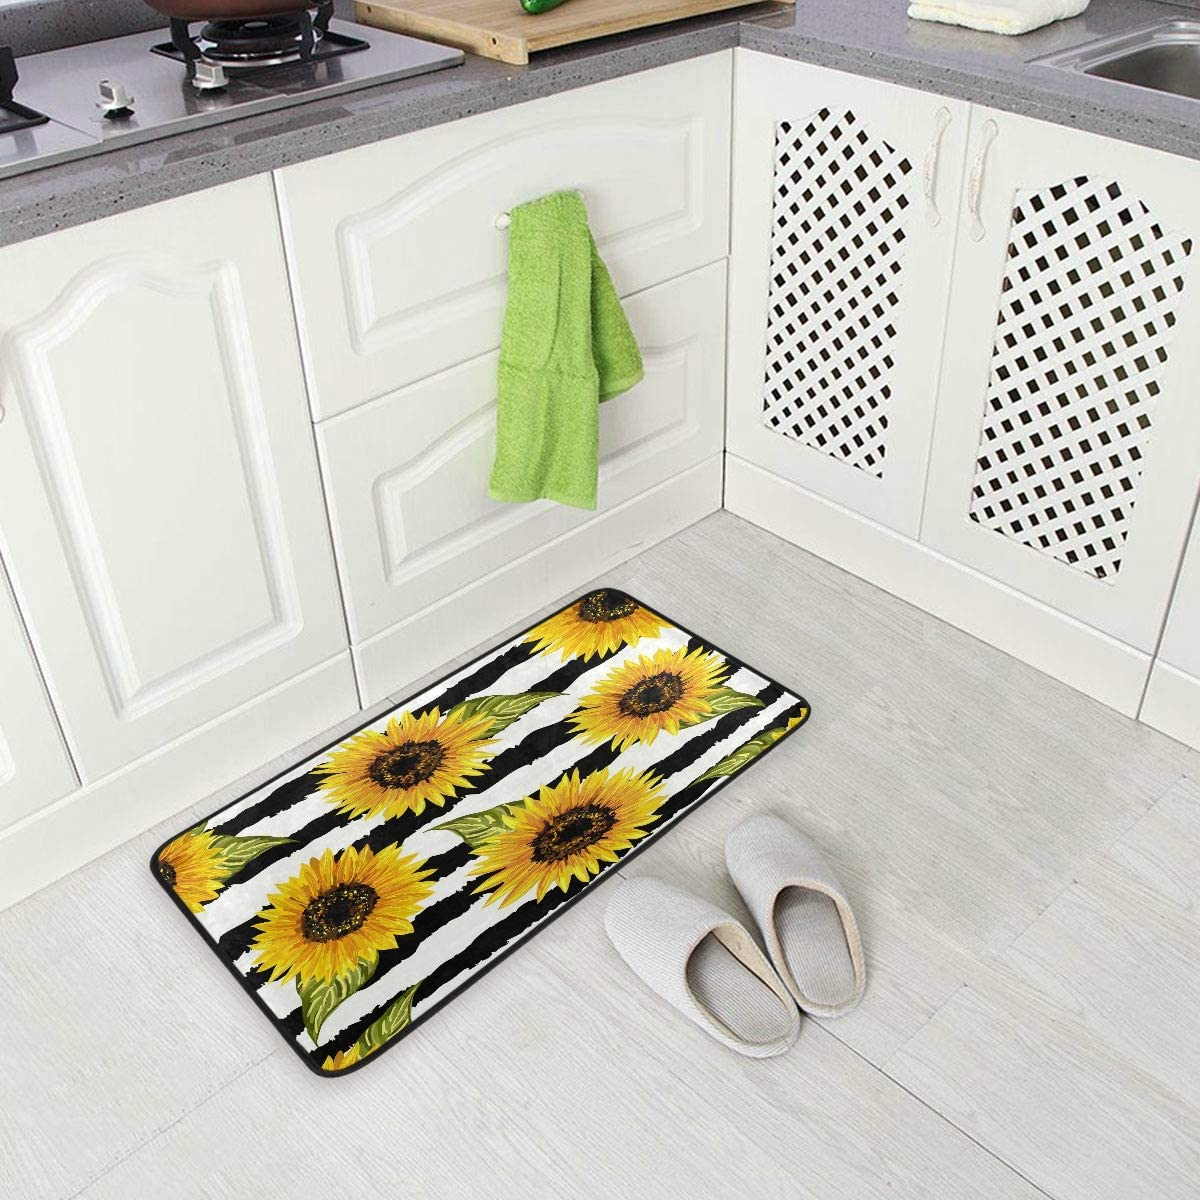 ALAZA Colored Sunflower Floral Blossom Non Slip Kitchen Floor Mat Kitchen Rug for Entryway Hallway Bathroom Living Room Bedroom 39 x 20 inches(1.7' x 3.3')